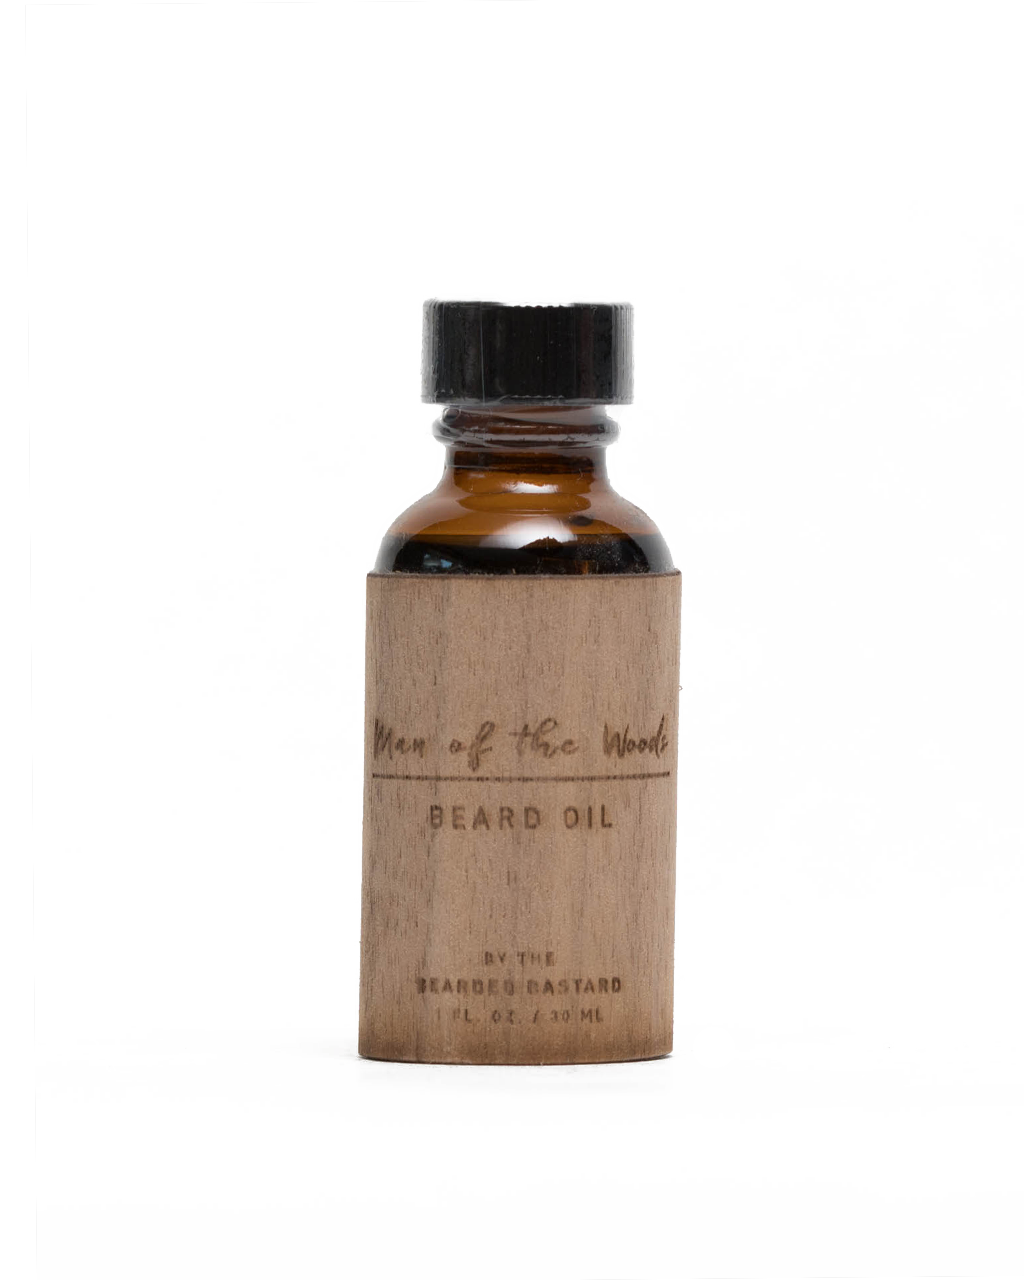 Man of the Woods Beard Oil